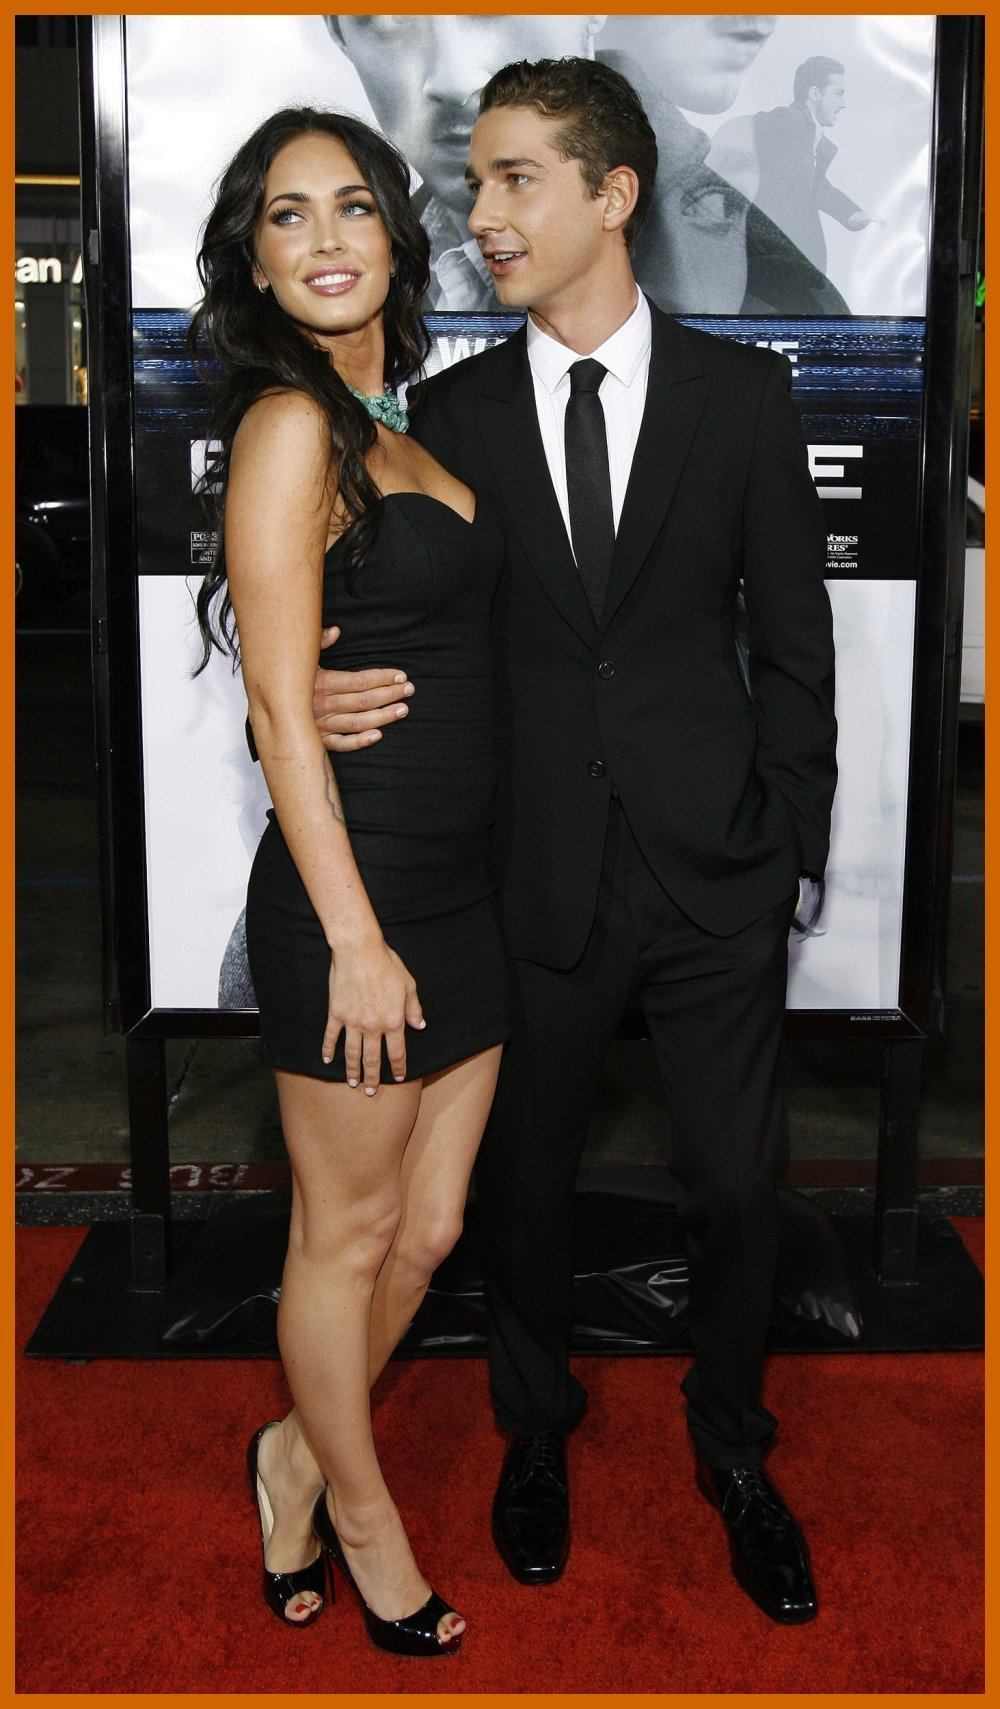 Megan Fox And Shia LaBeouf At The Premiere Of The Movie Eagle Eye - shia-labeouf photo